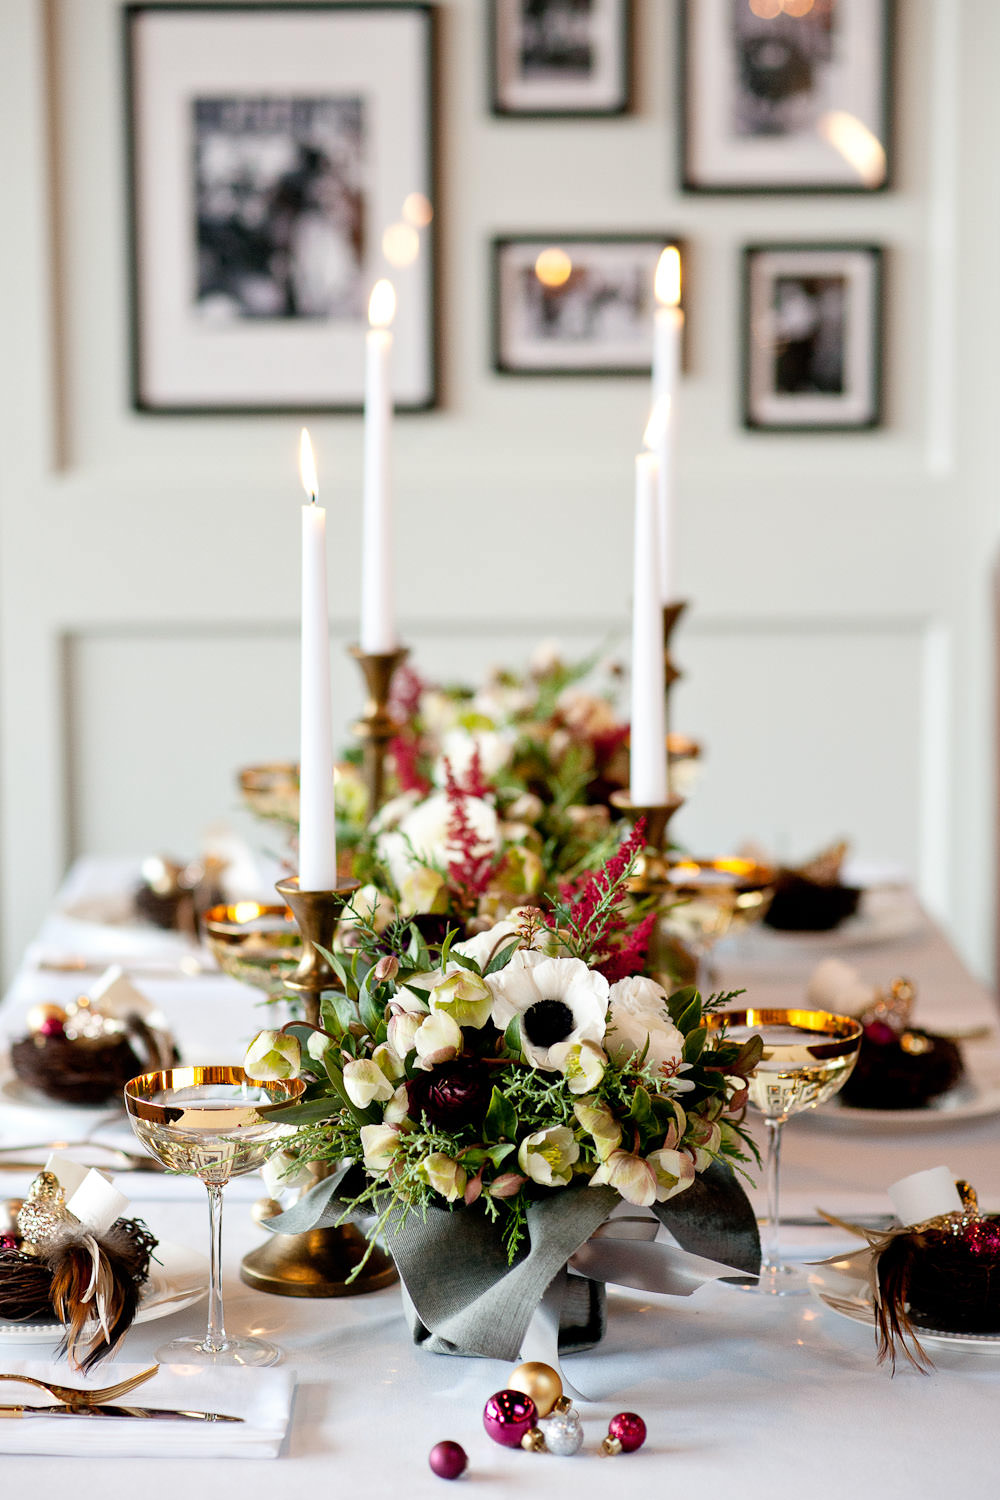 Holiday table settings at Royale Calgary wedding portfolio for Tara Whittaker Photography